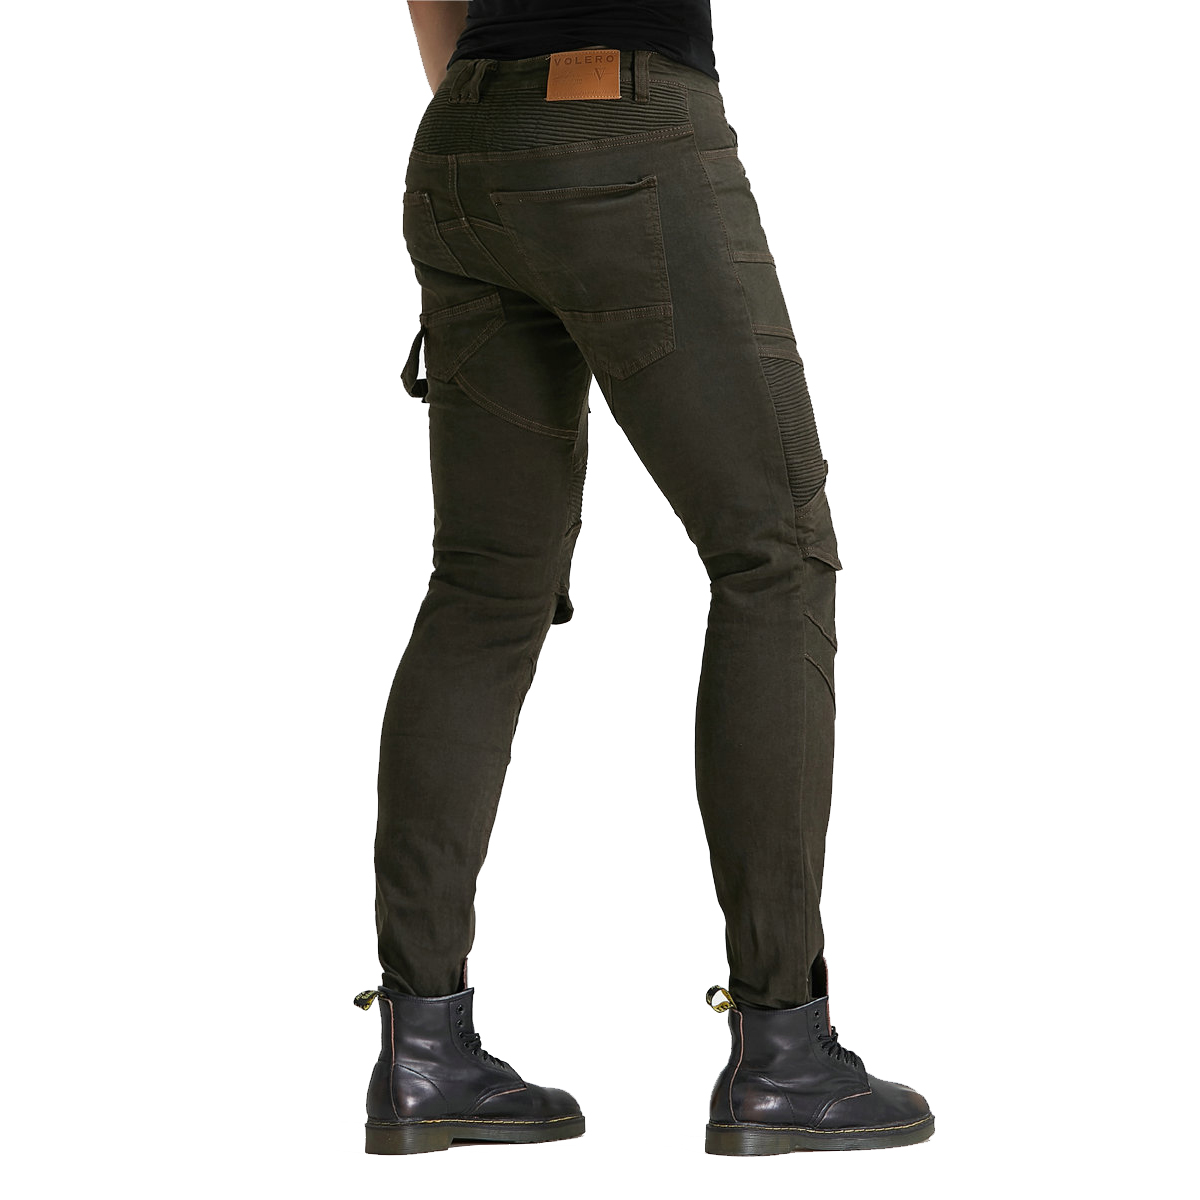 Men/'s Motorbike Motorcycle Protective Motocross Lining Armoured Padded Reinforced Protective Lining Biker Trouser Jeans Pant